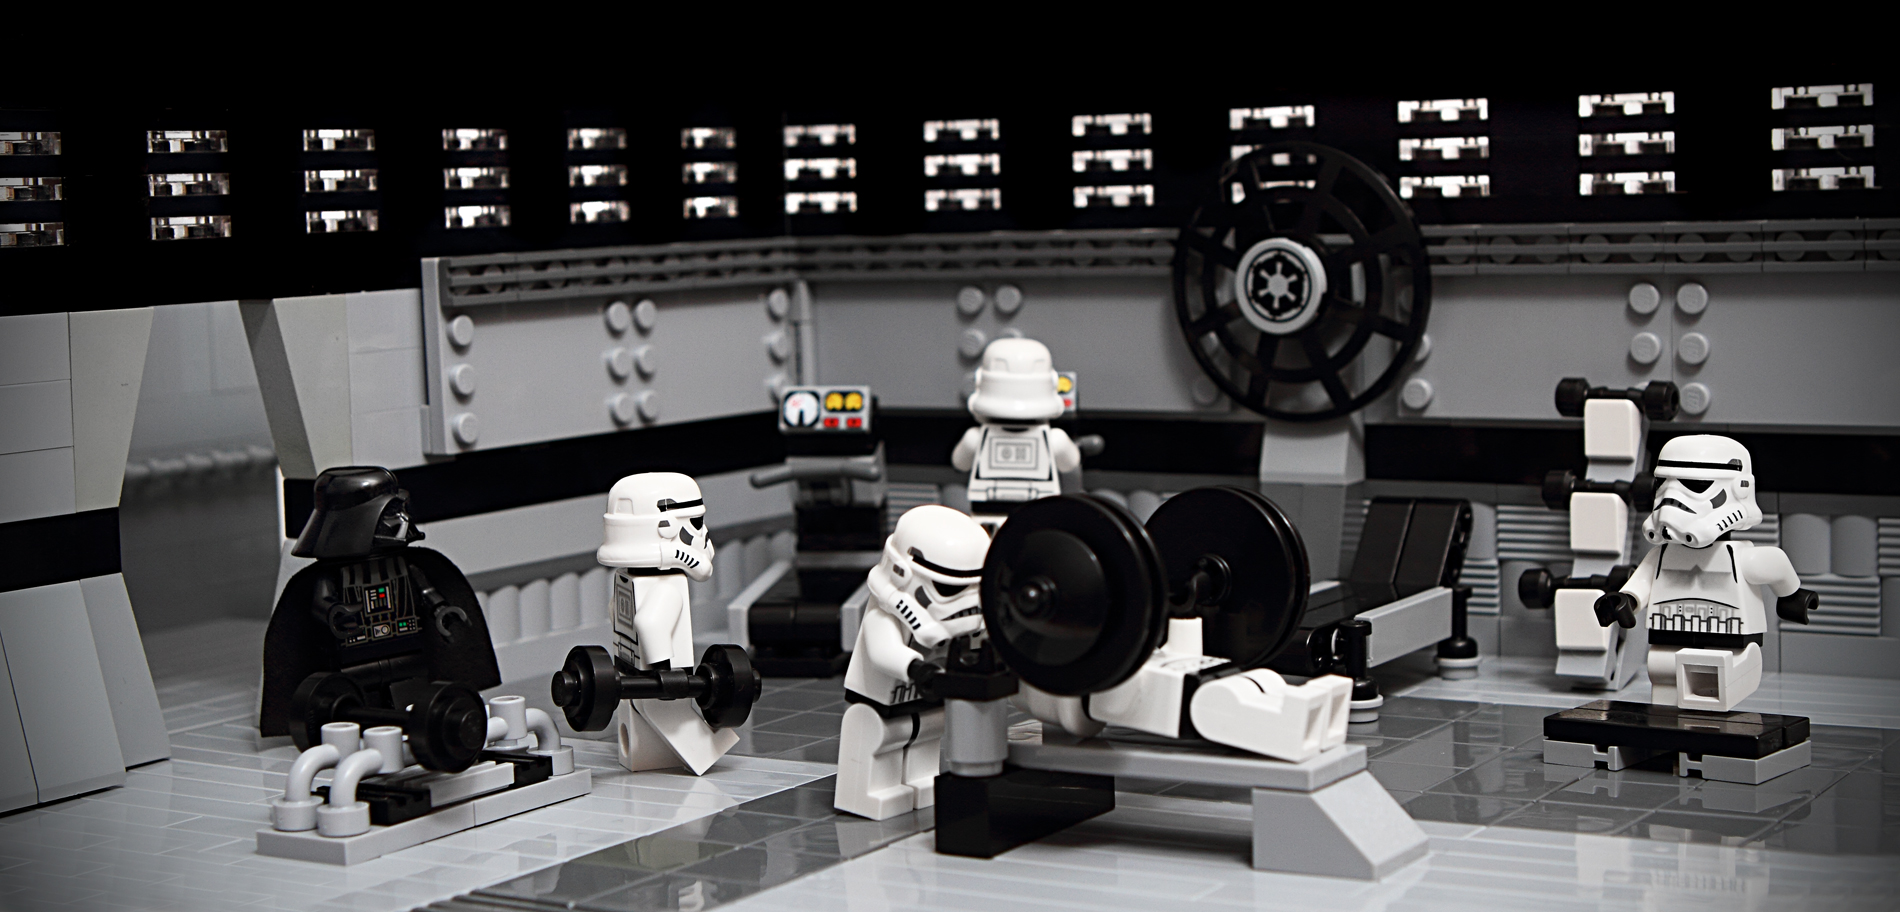 storm trooper legos working out at the gym